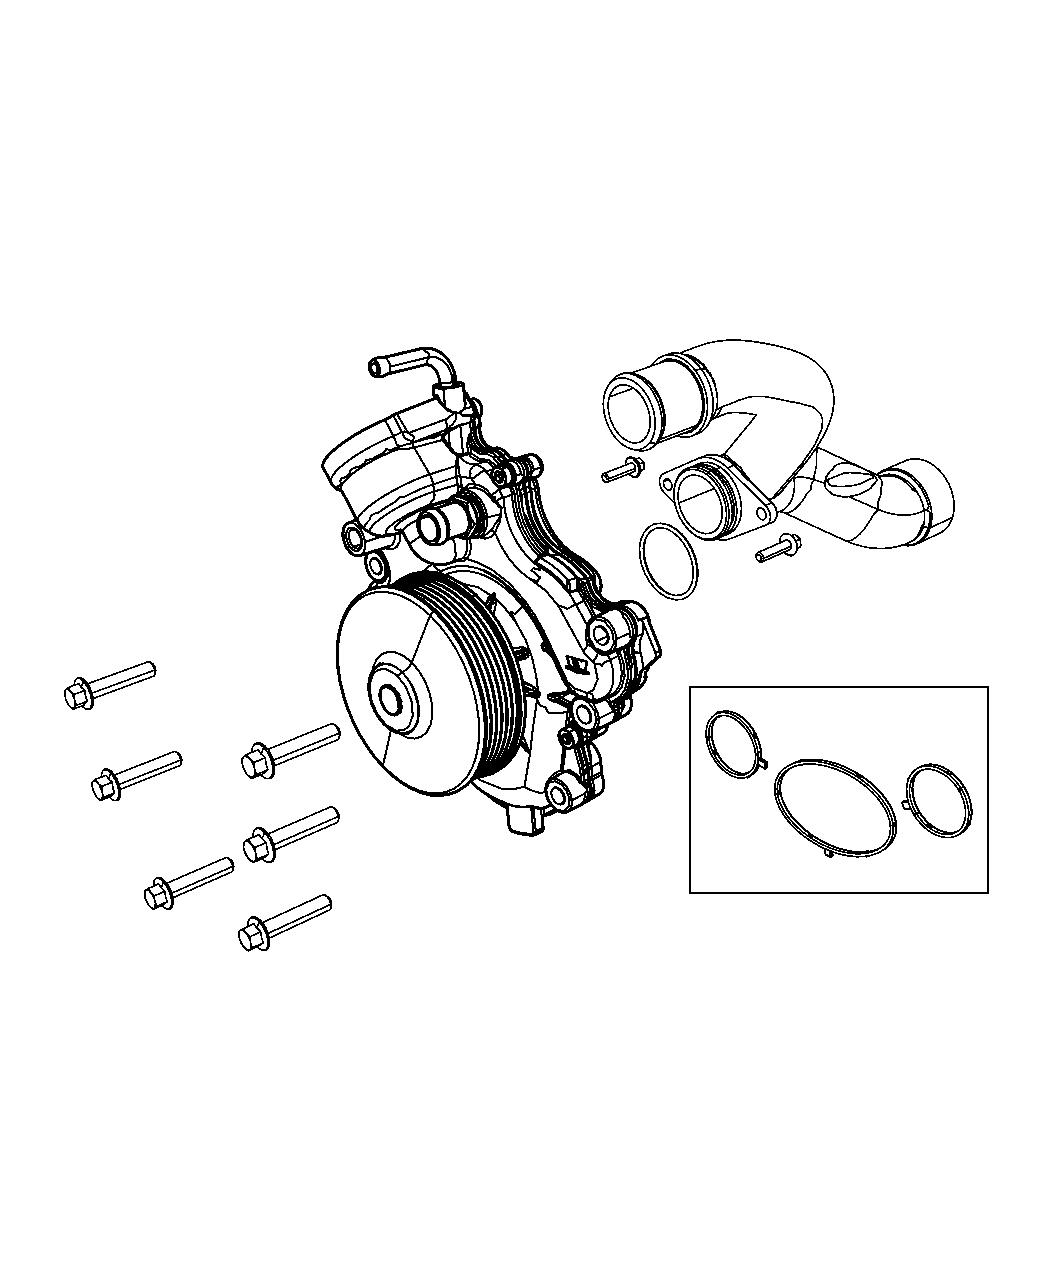 Jeep Grand Cherokee Water Pump And Related Parts